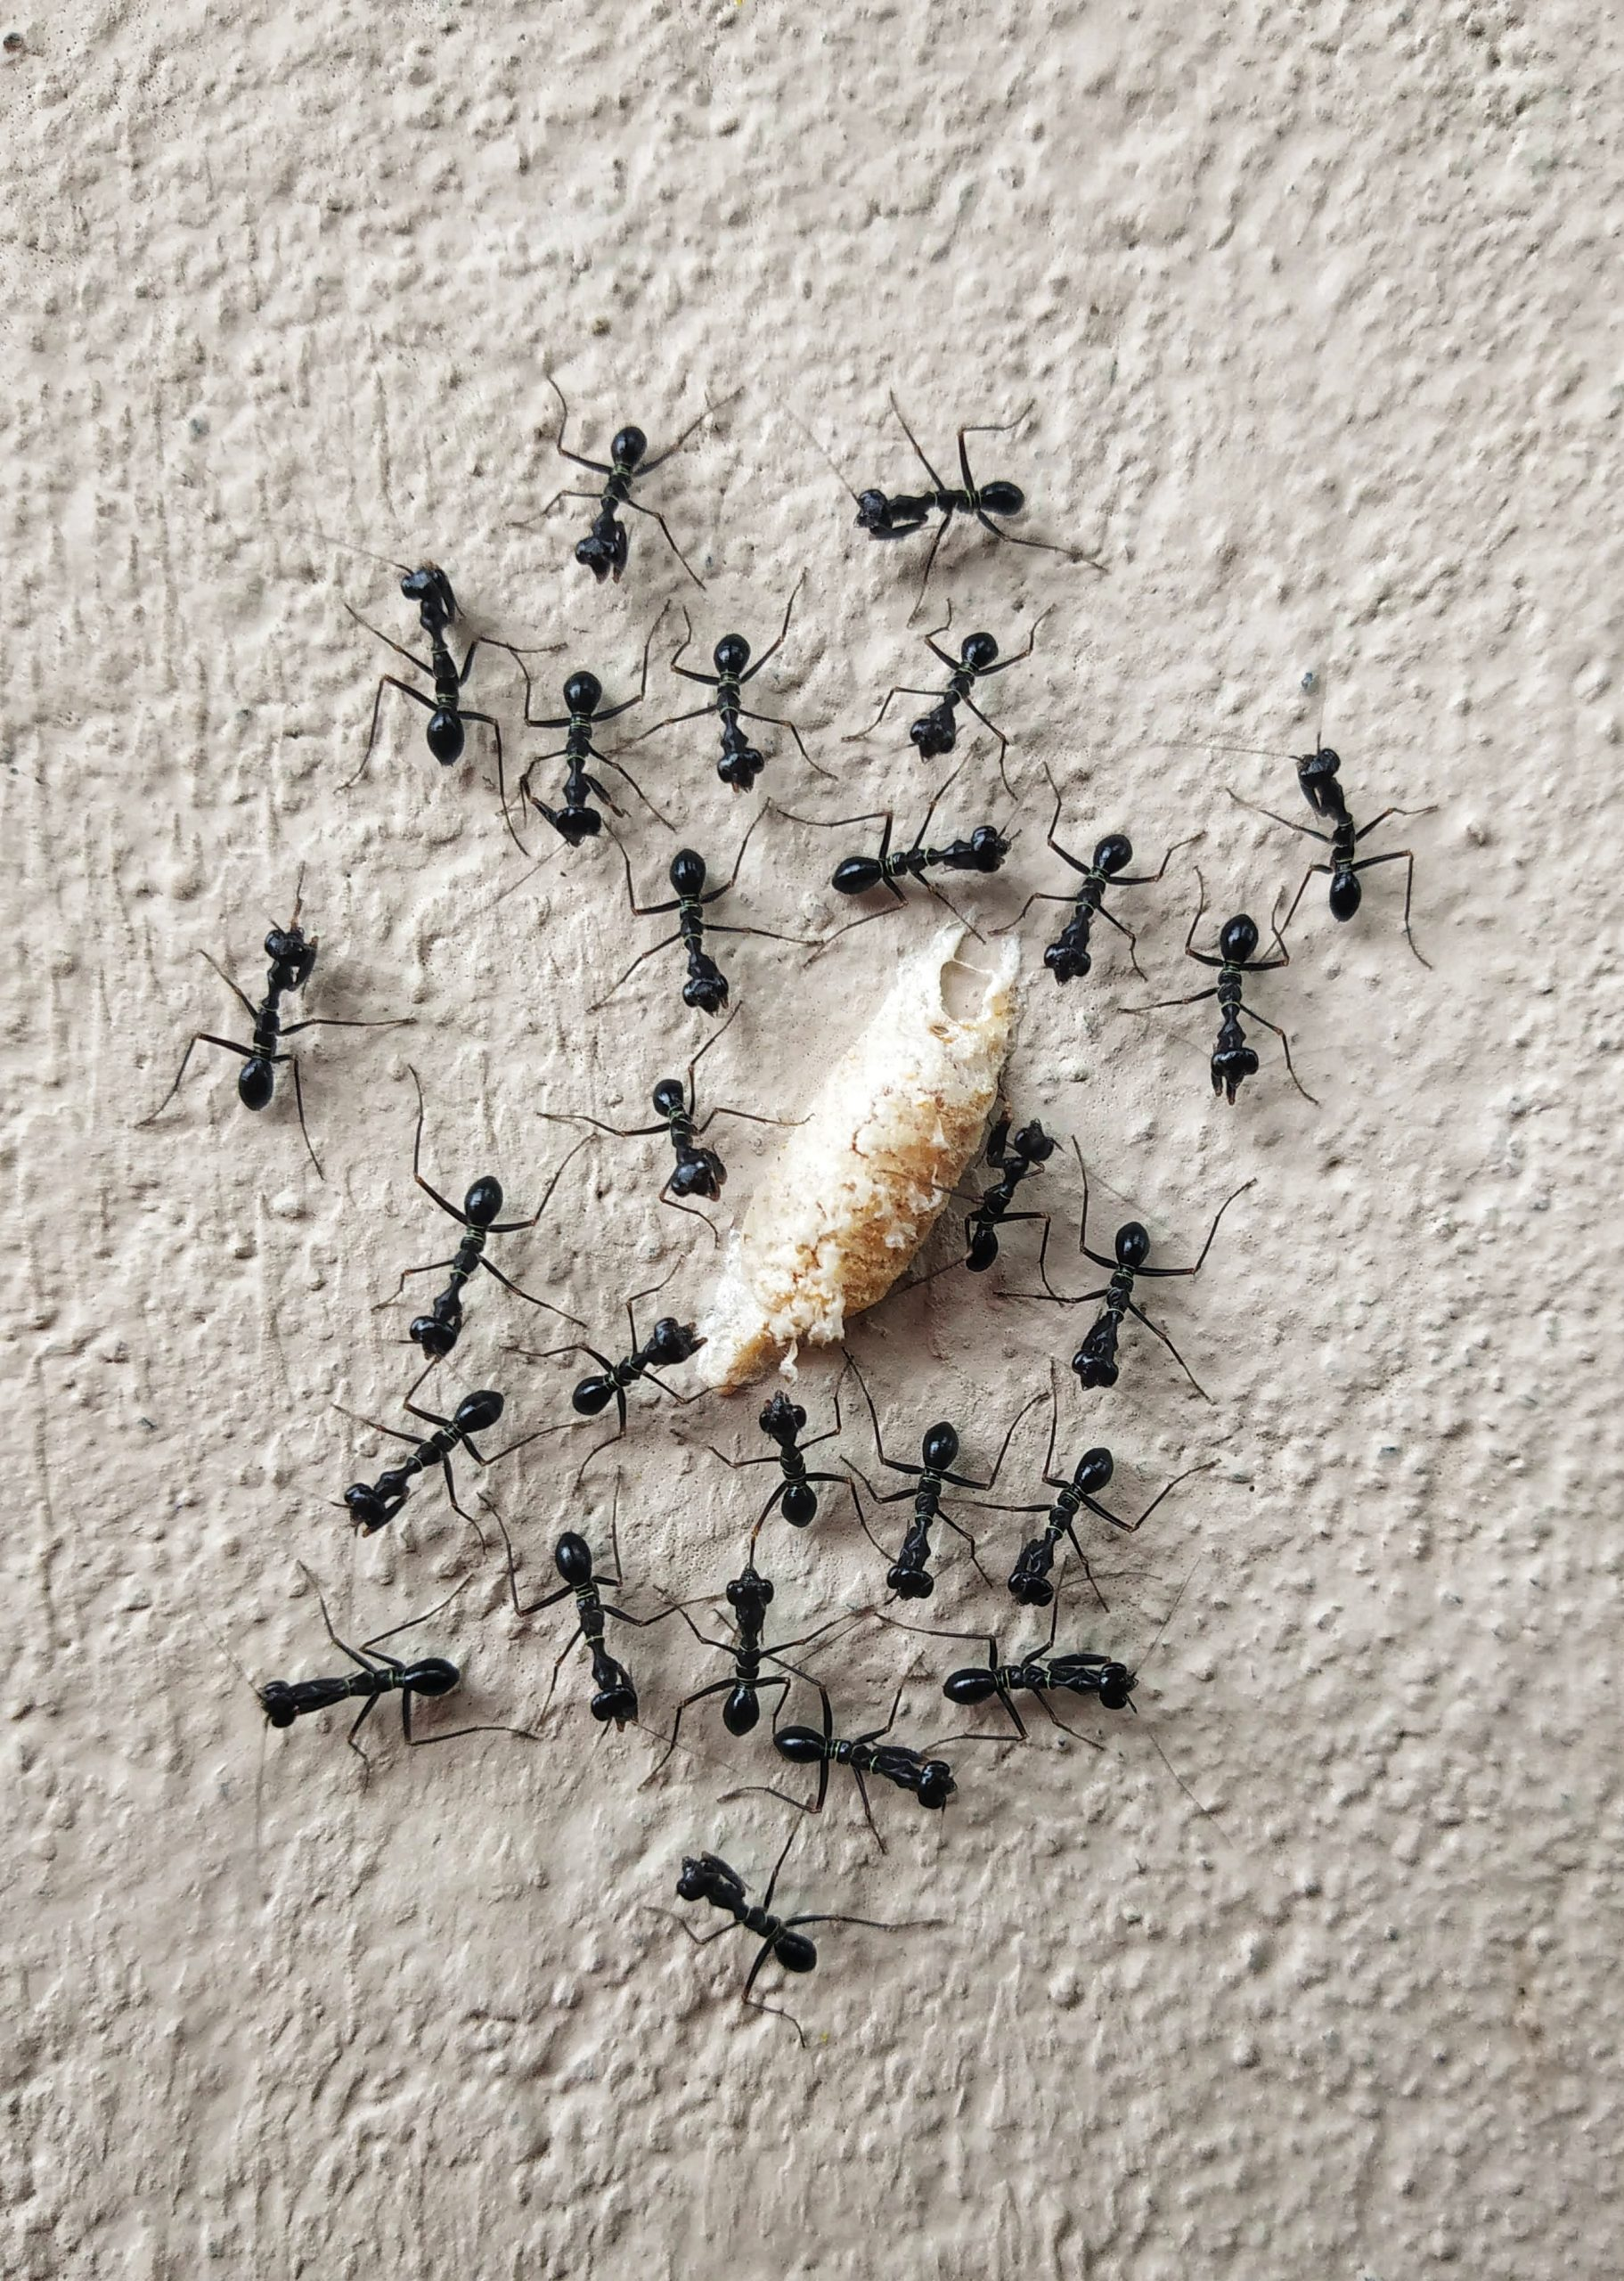 An ant colony